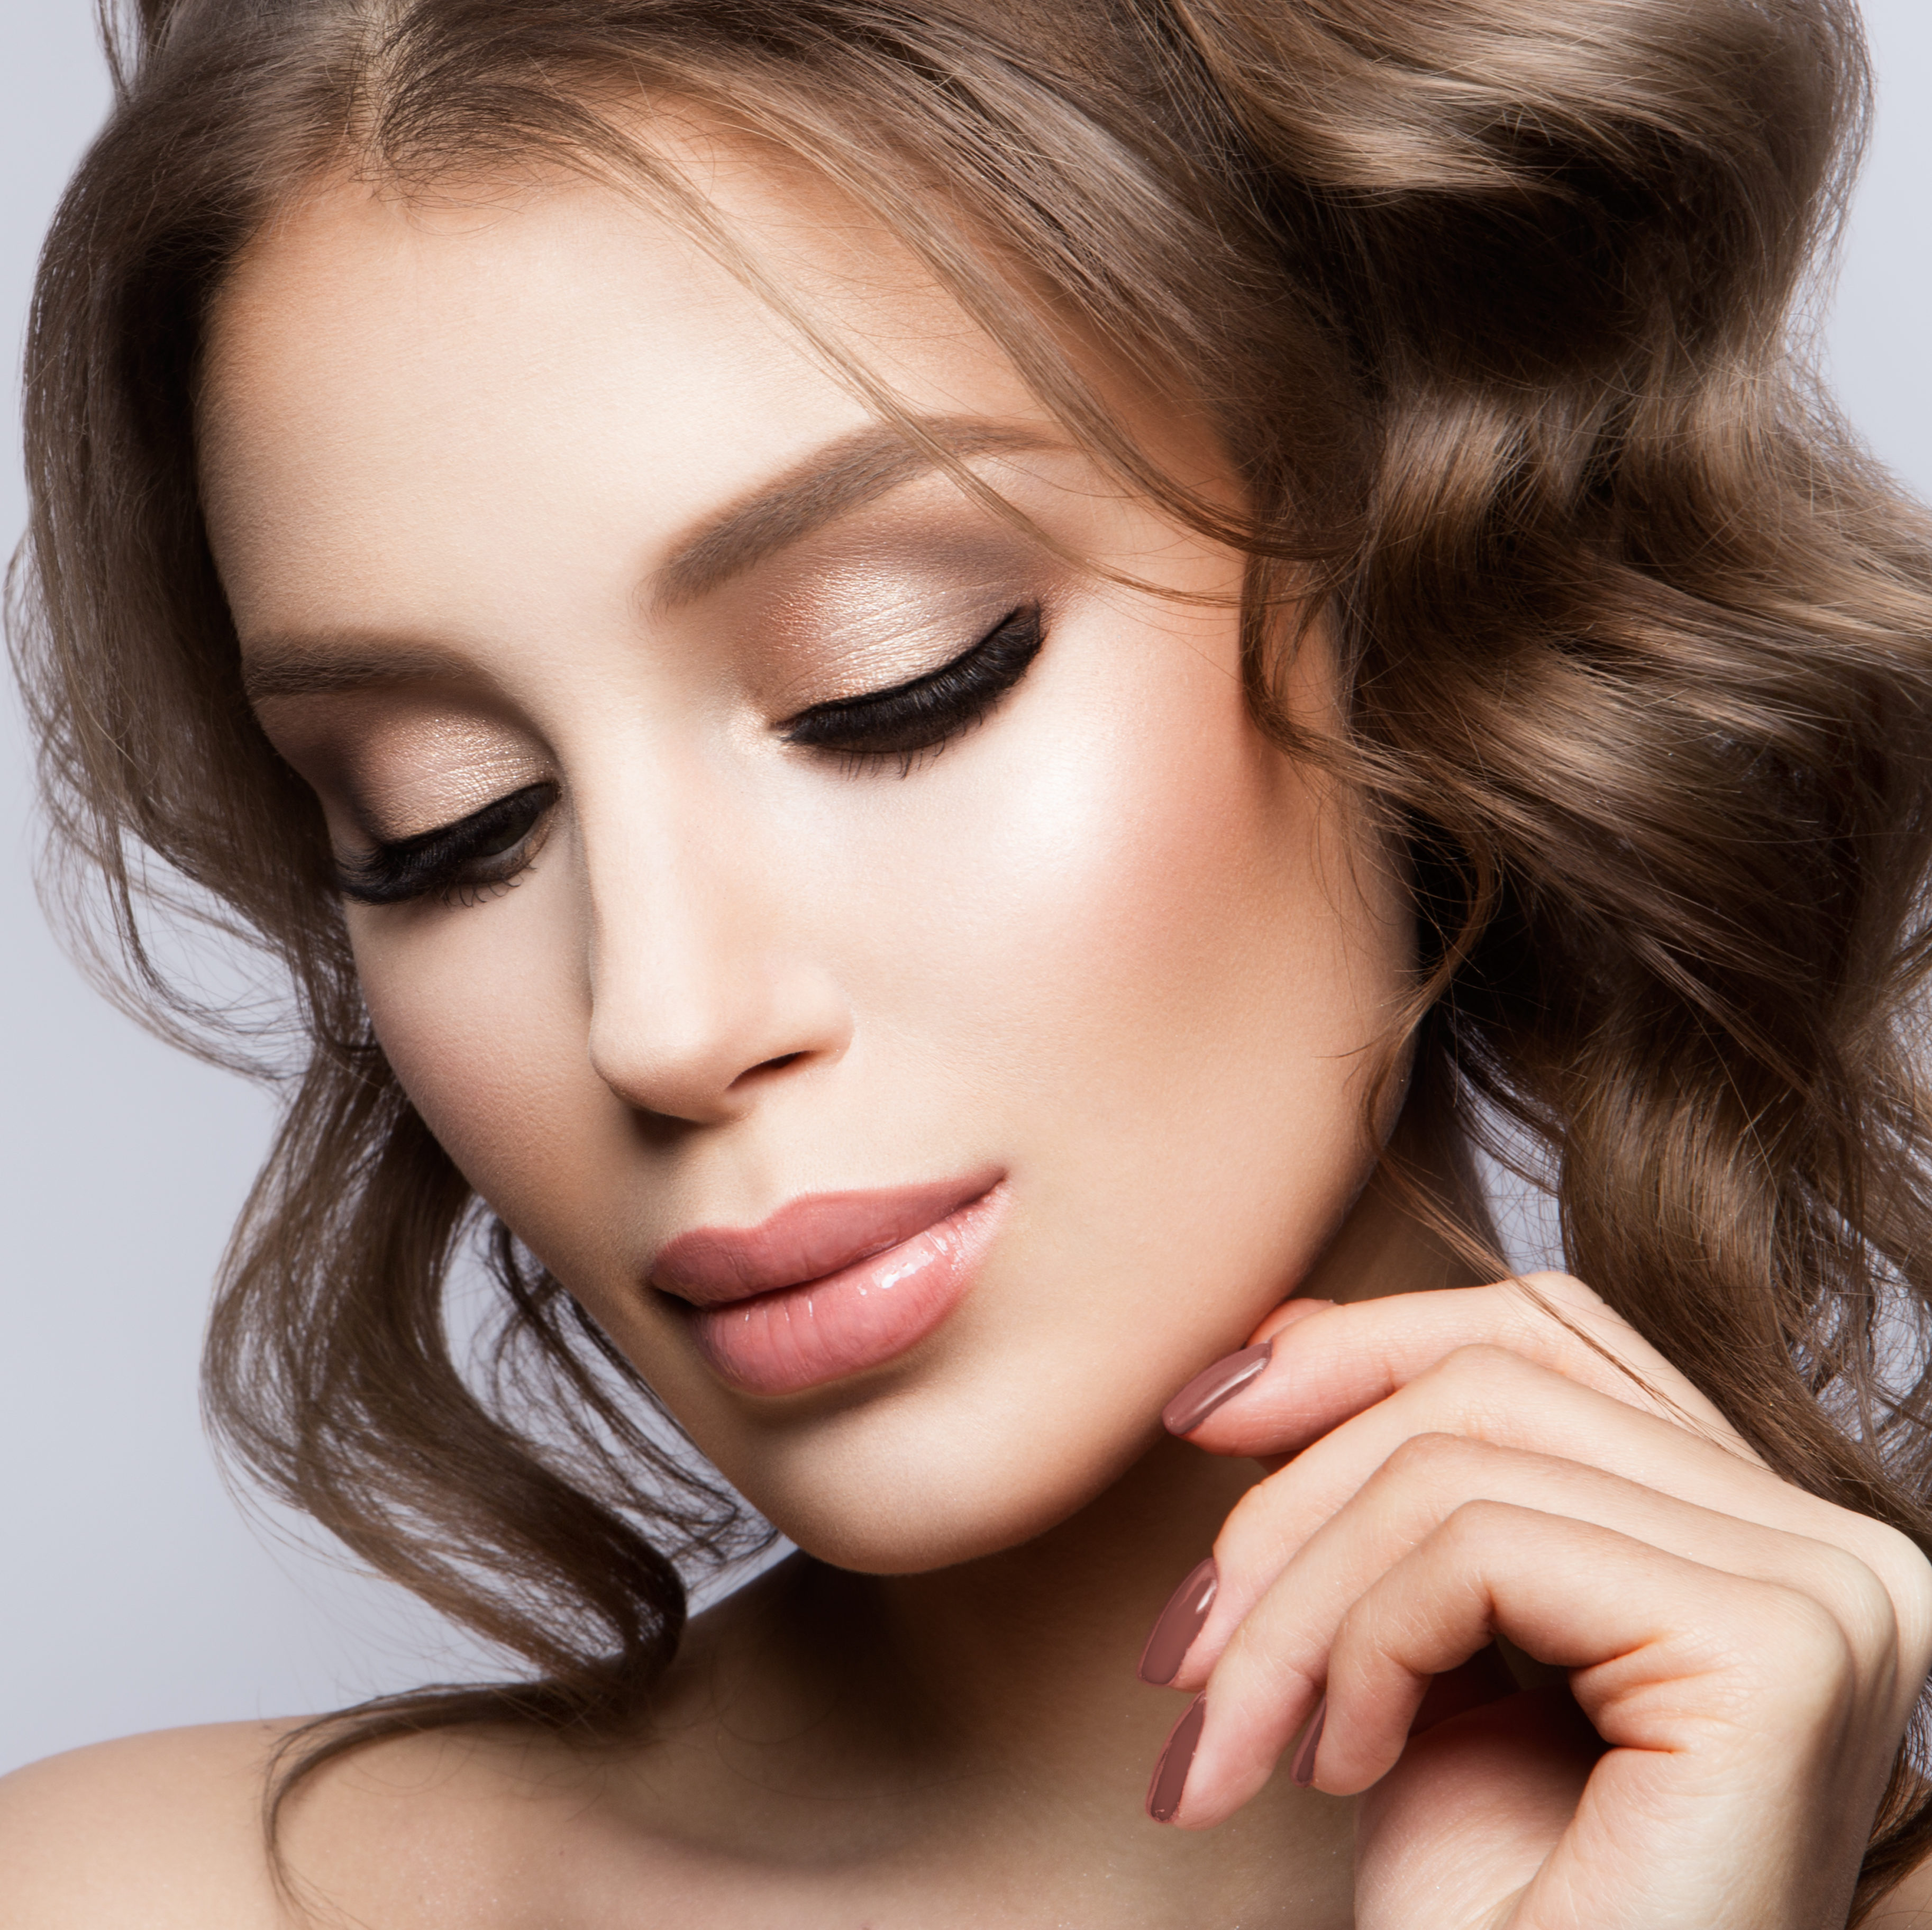 Online Cosmetic Surgery Consultation - Blog Featured Image | Beauty Woman face Portrait. Beautiful model Girl with Perfect Fresh Clean Skin | Source: https://elements.envato.com/beauty-woman-face-portrait-beautiful-model-girl-wi-P3RSHPJ